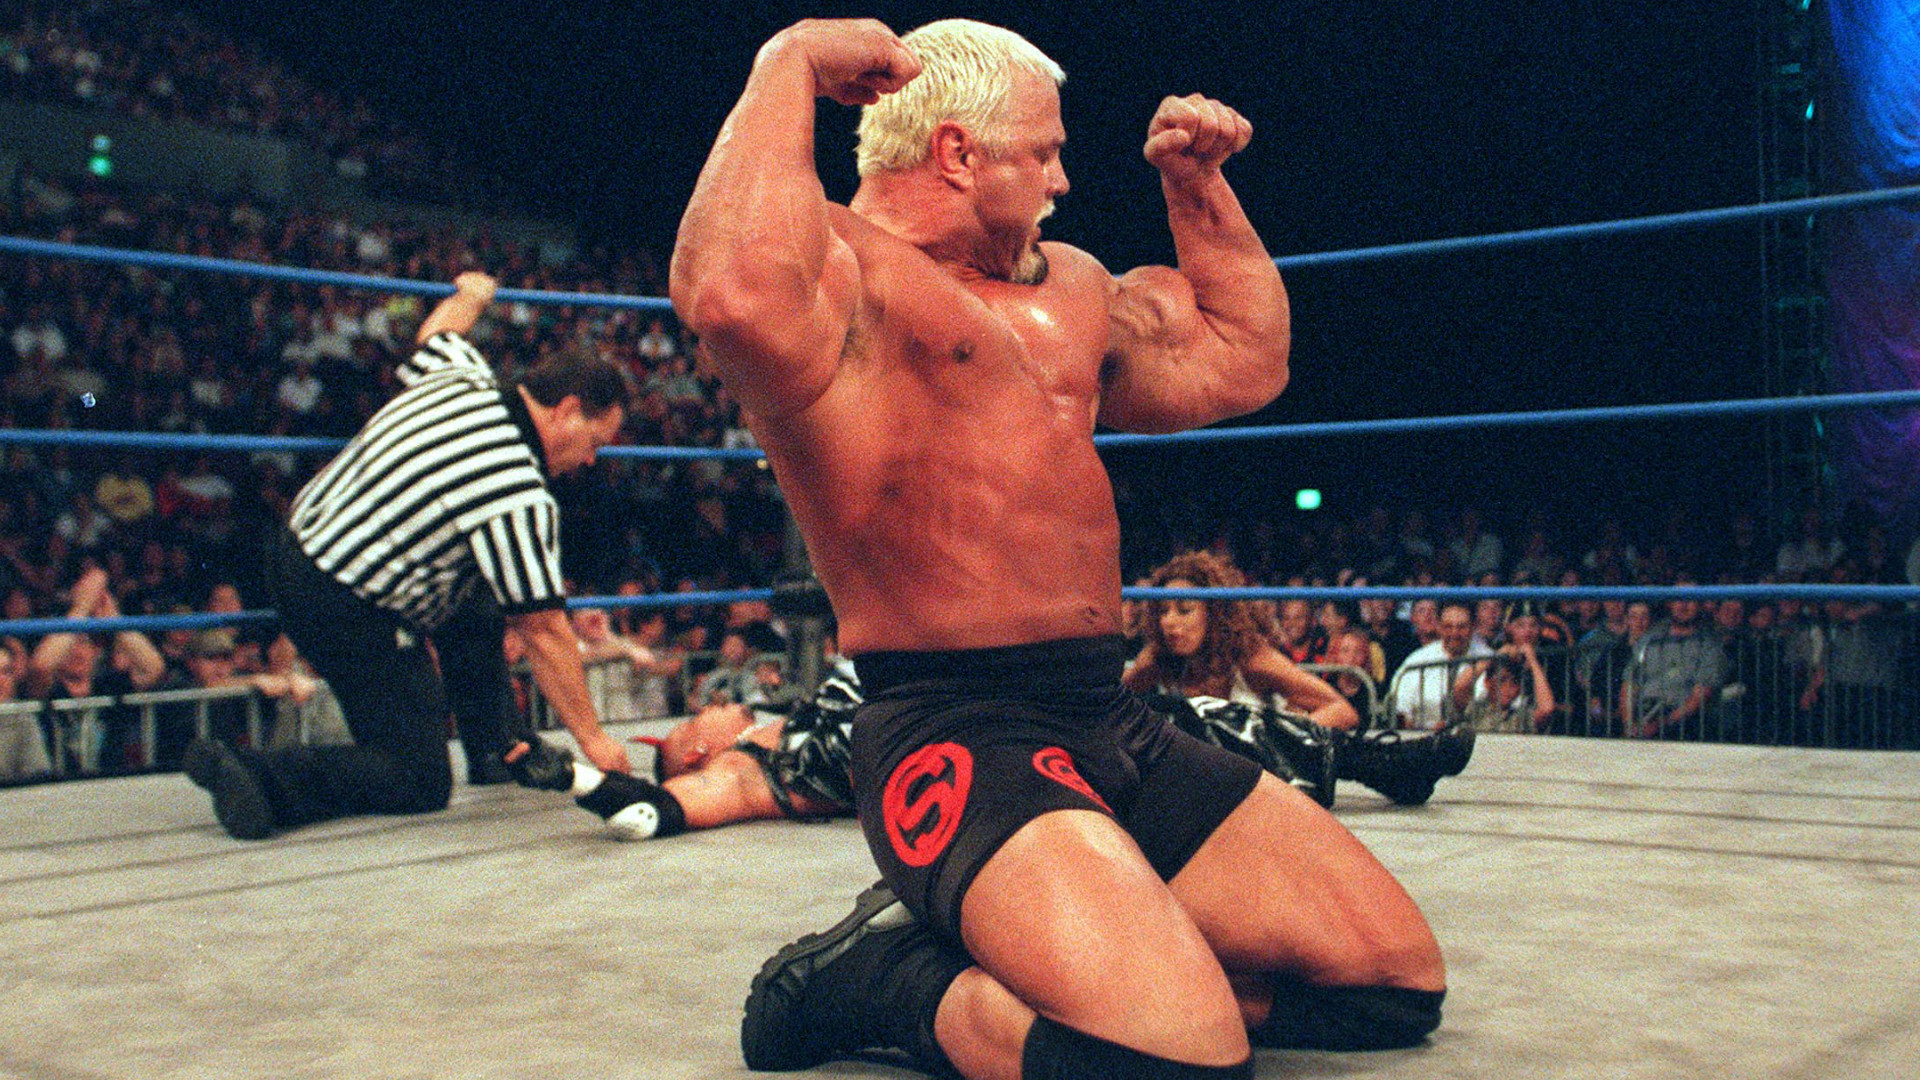 WWE star Scott Steiner